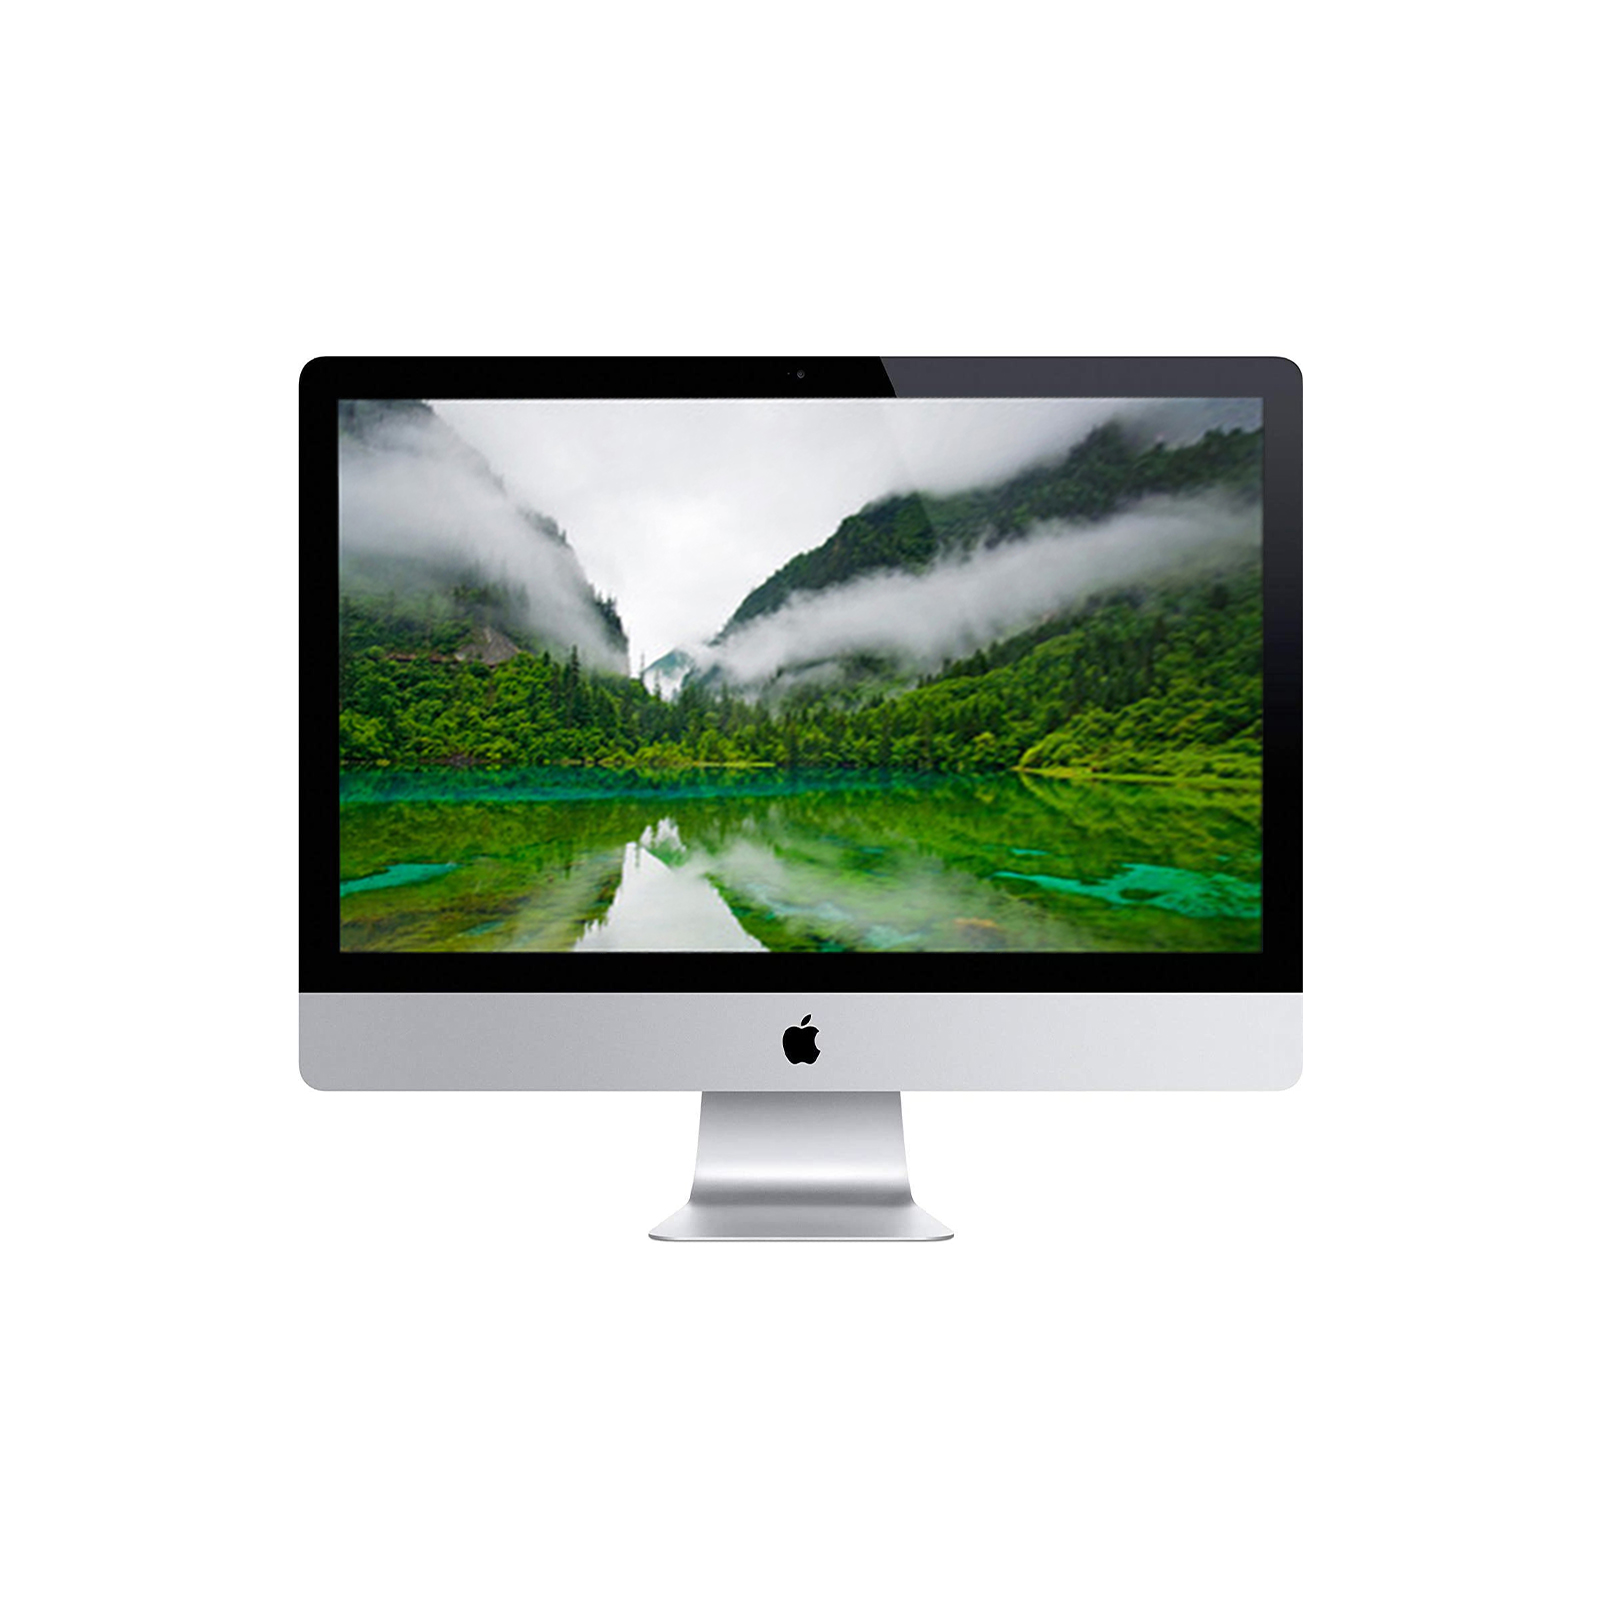 "Apple iMac 21.5"" Late 2013 - Core i5 2.9GHz 8GB RAM 1TB HDD [Imperfect] [6M]"